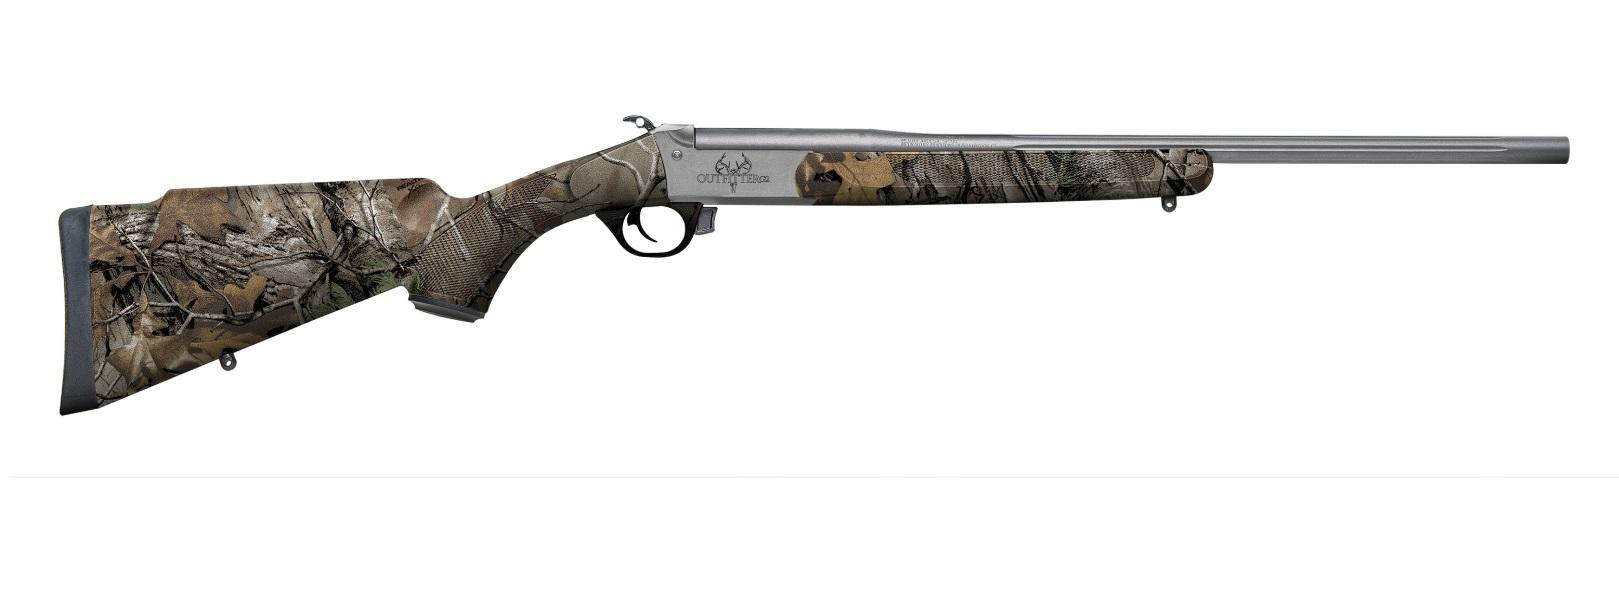 OUTFITTER G2 44MAG 22 SS     - CROMOLY FLUTED BARREL